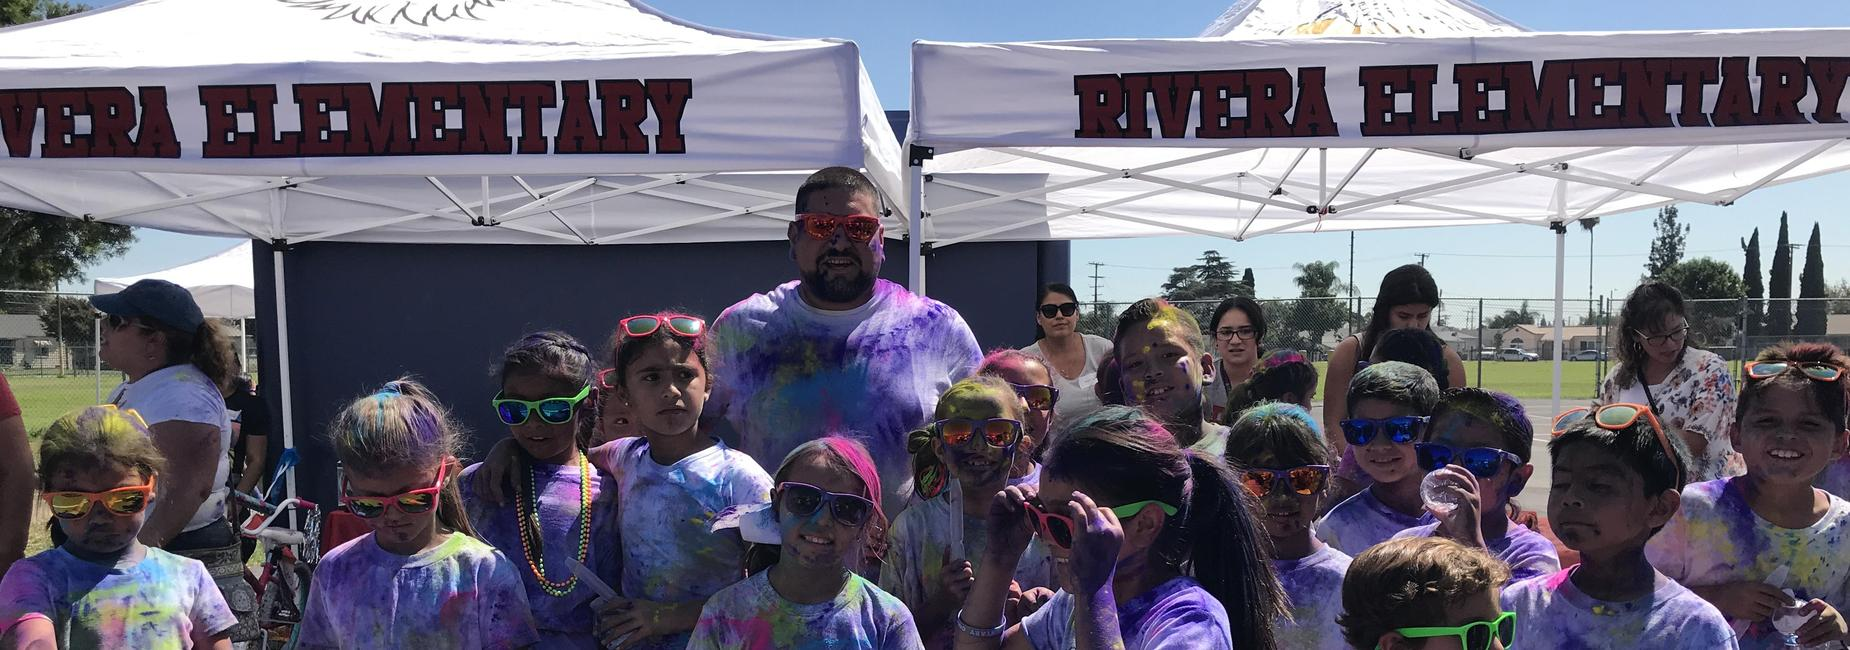 Our Principal with students at our Color Run.